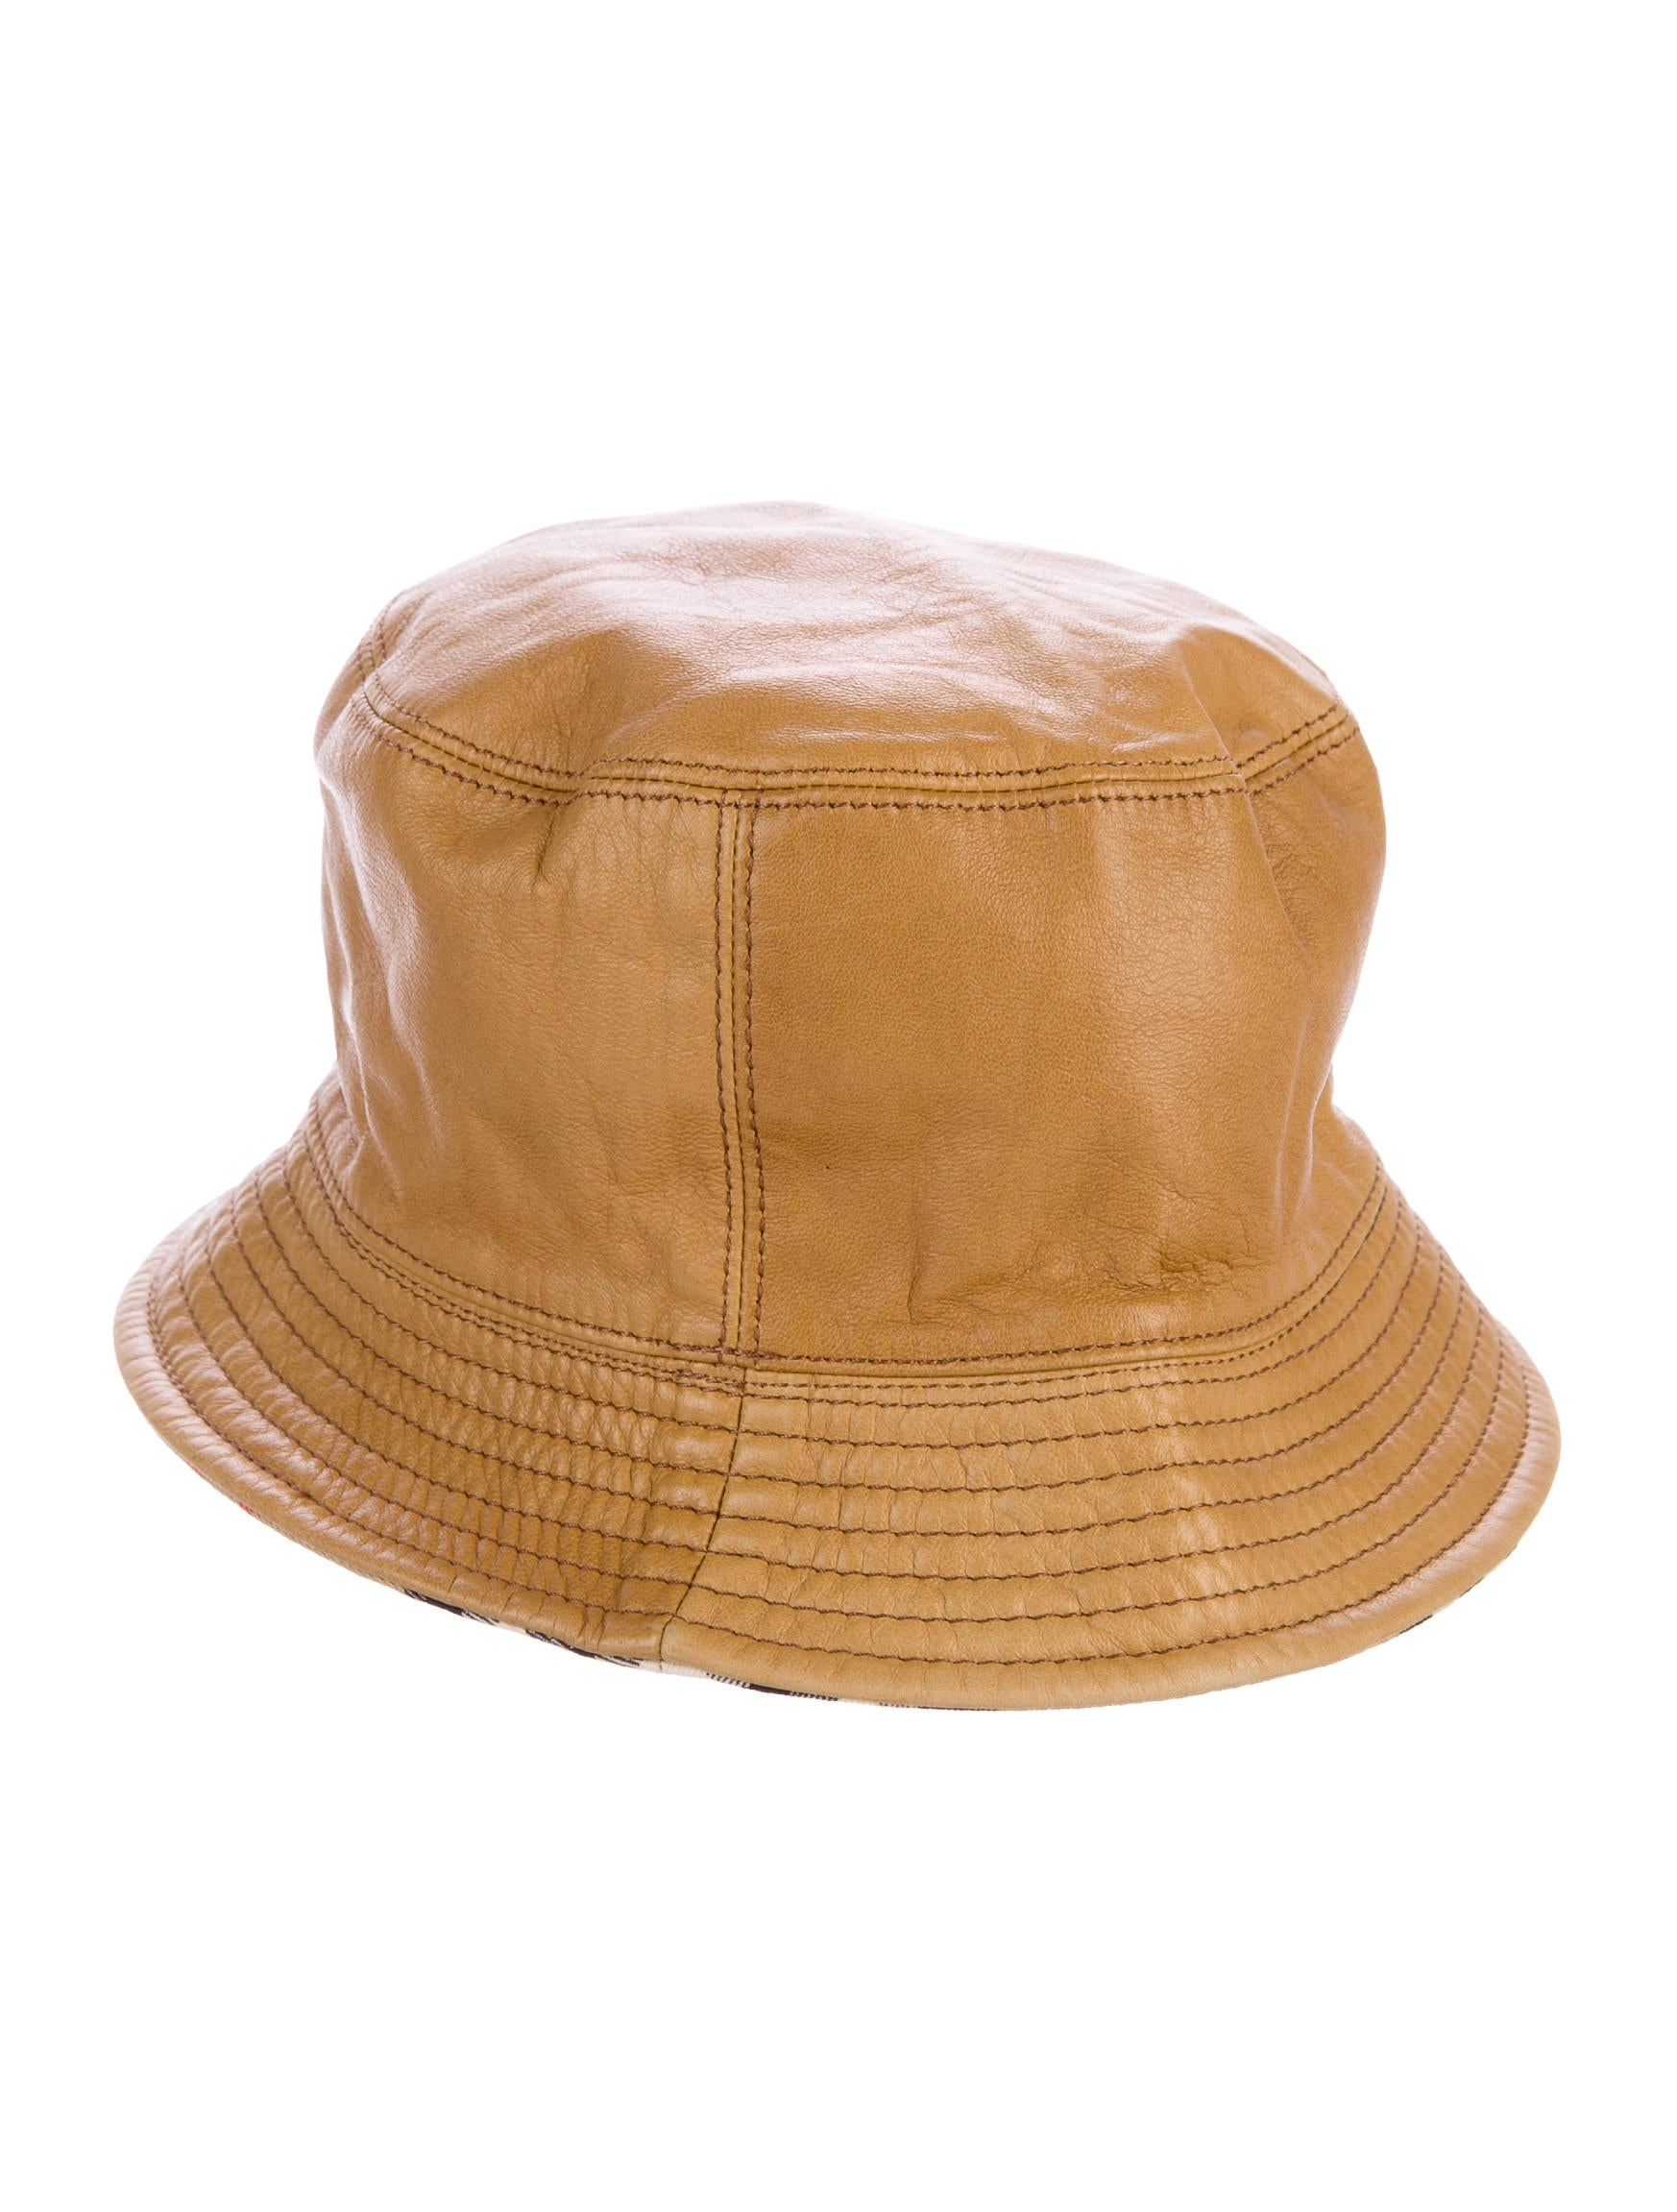 Burberry Leather Reversible Bucket Hat - Accessories - BUR77367 ... be9e4a23c7f